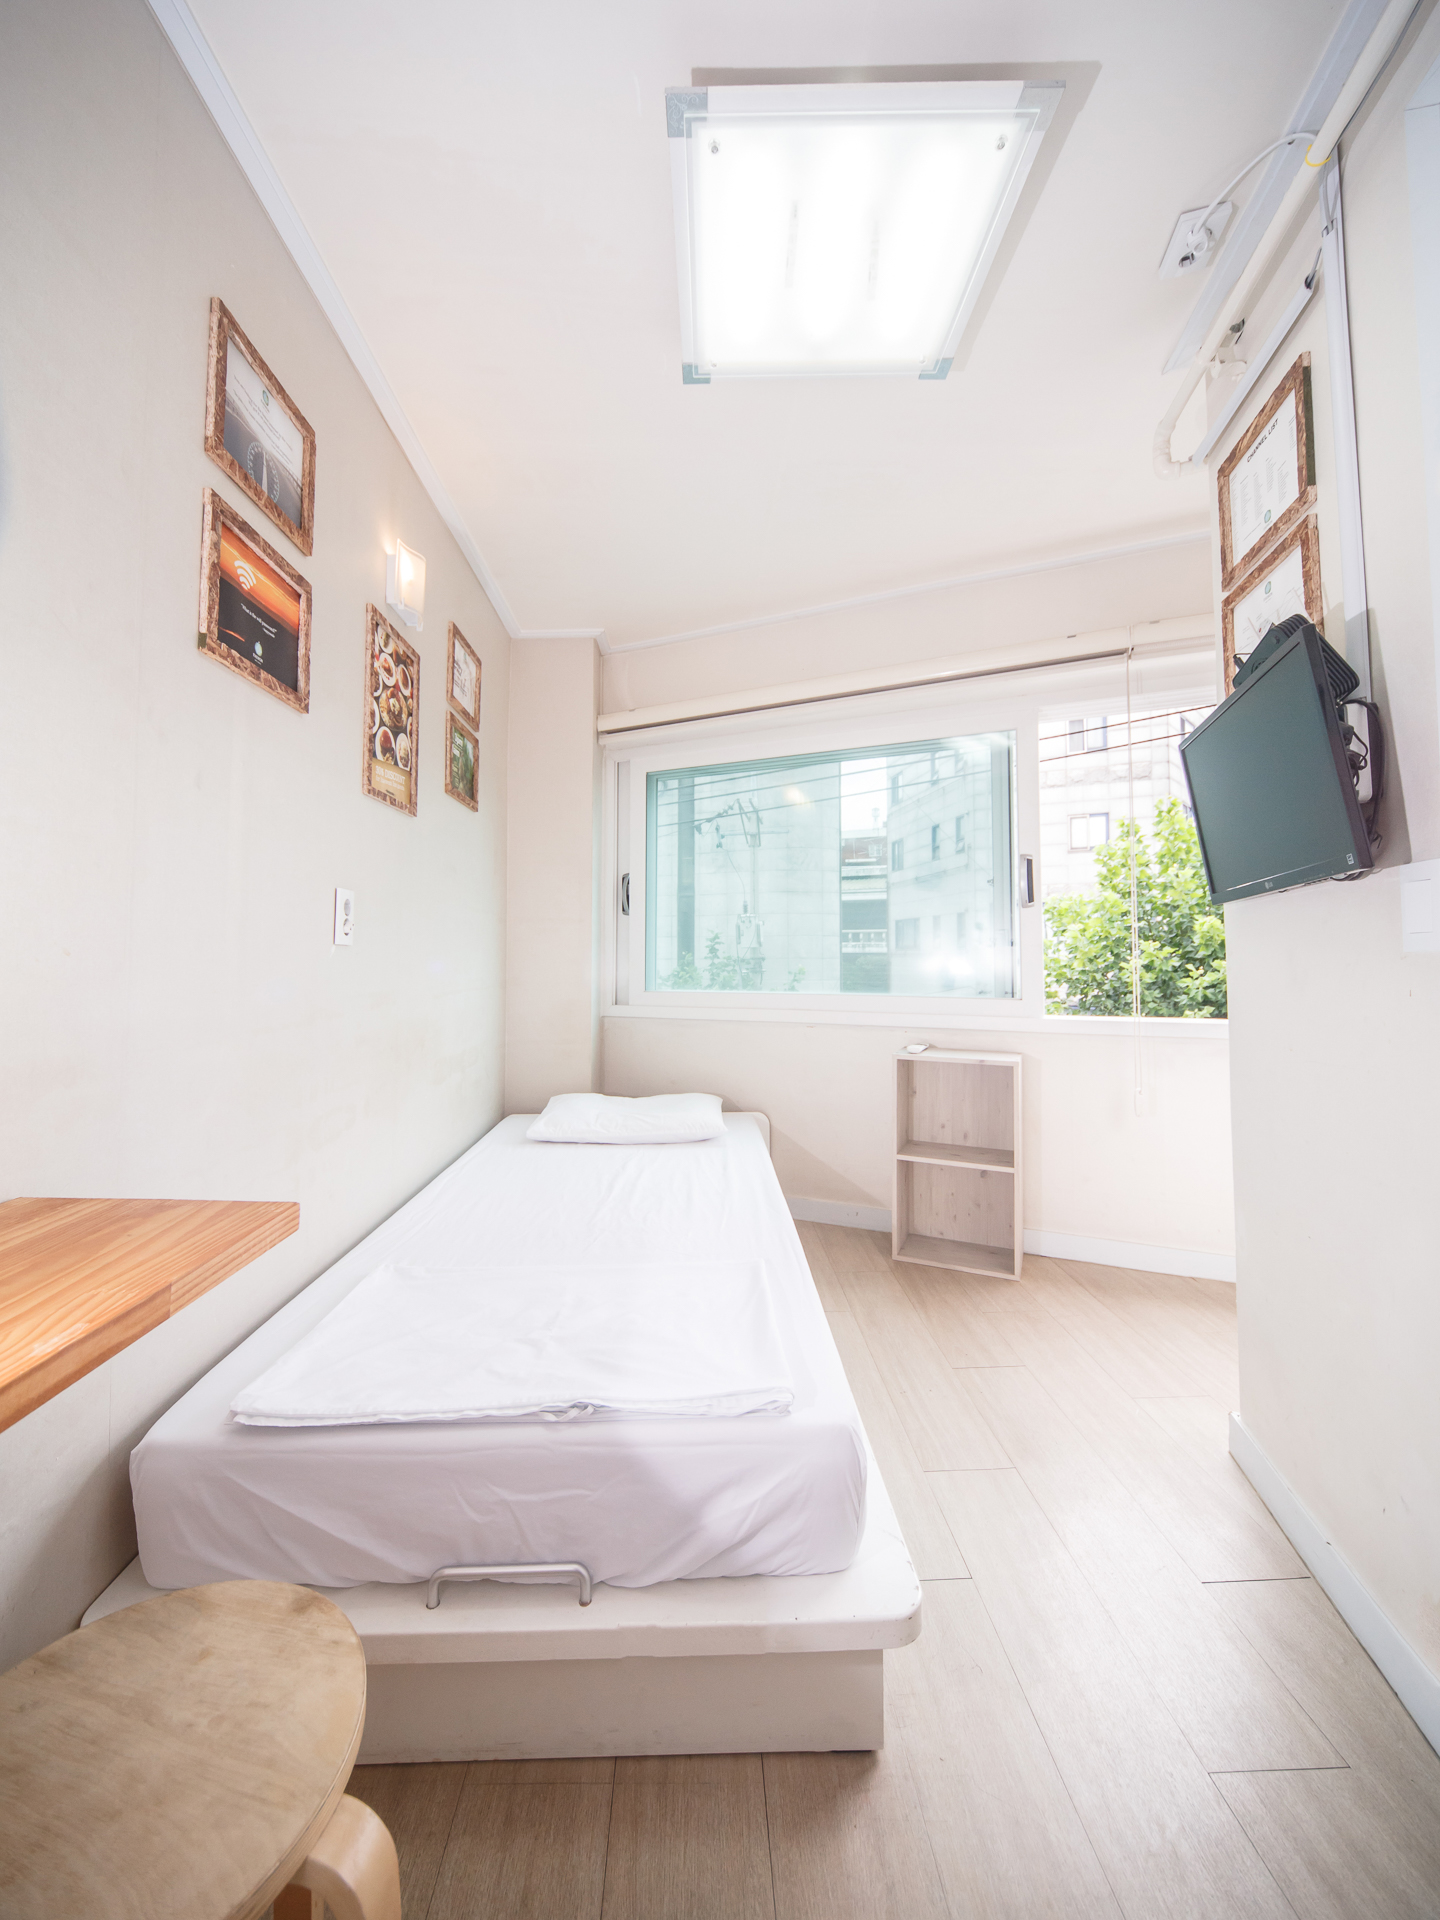 Single room, Itaewon Inn hostel